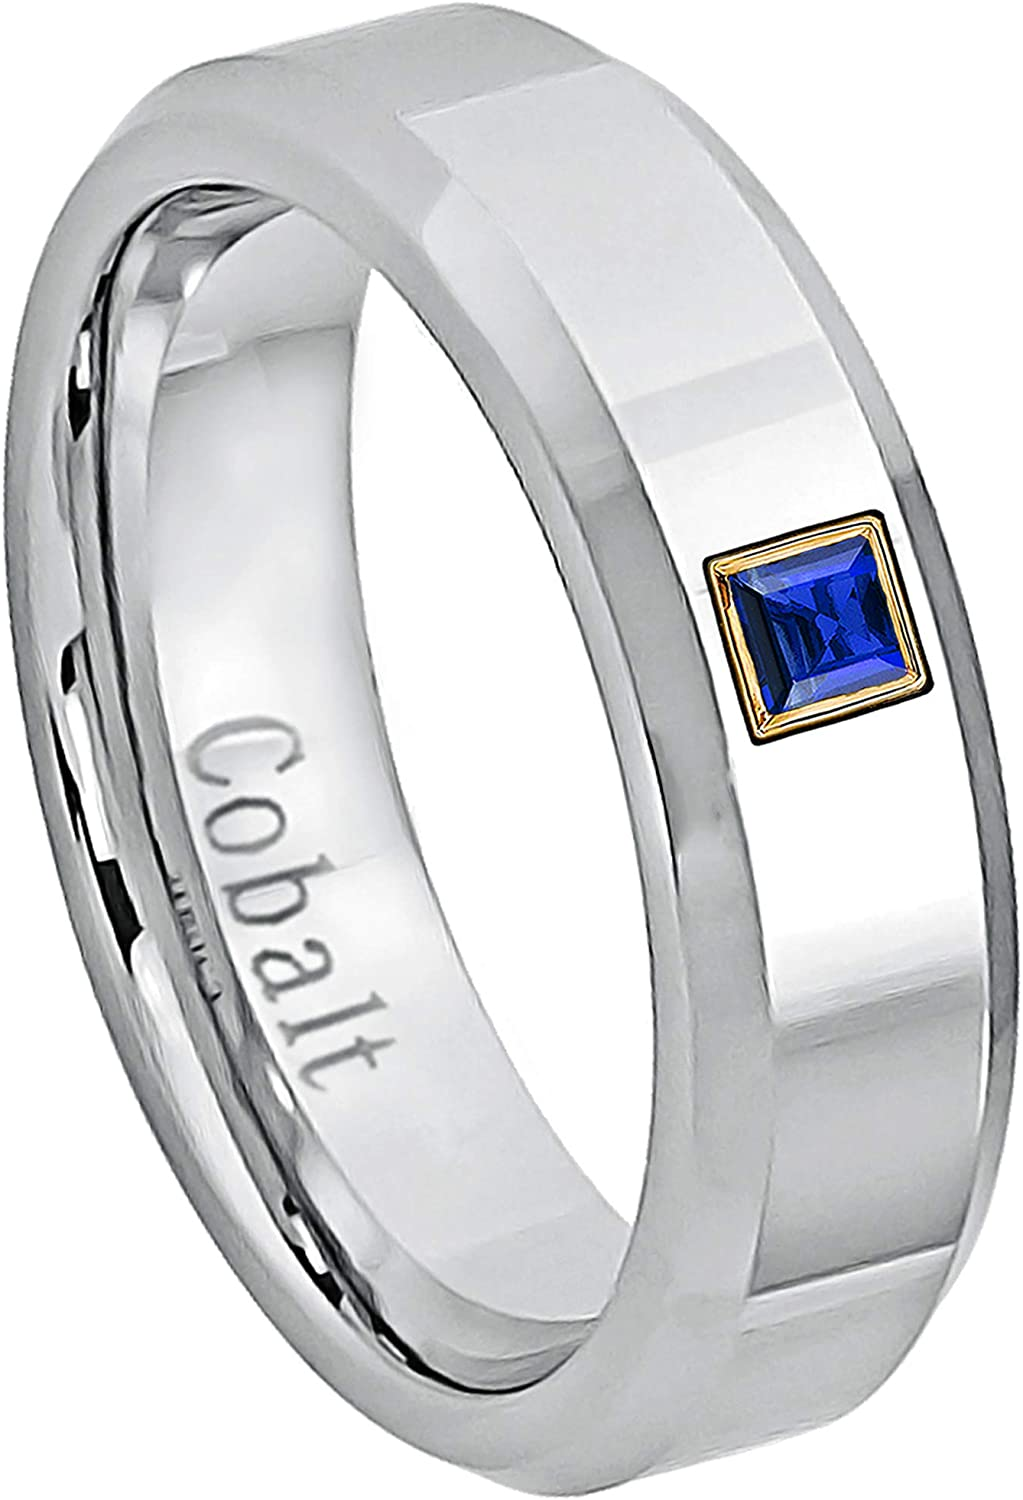 September Birthstone Ring 6MM Polished Finish Beveled Edge Cobalt Chrome Wedding Band 0.05ctw Solitaire Princess Cut Blue Sapphire Cobalt Ring